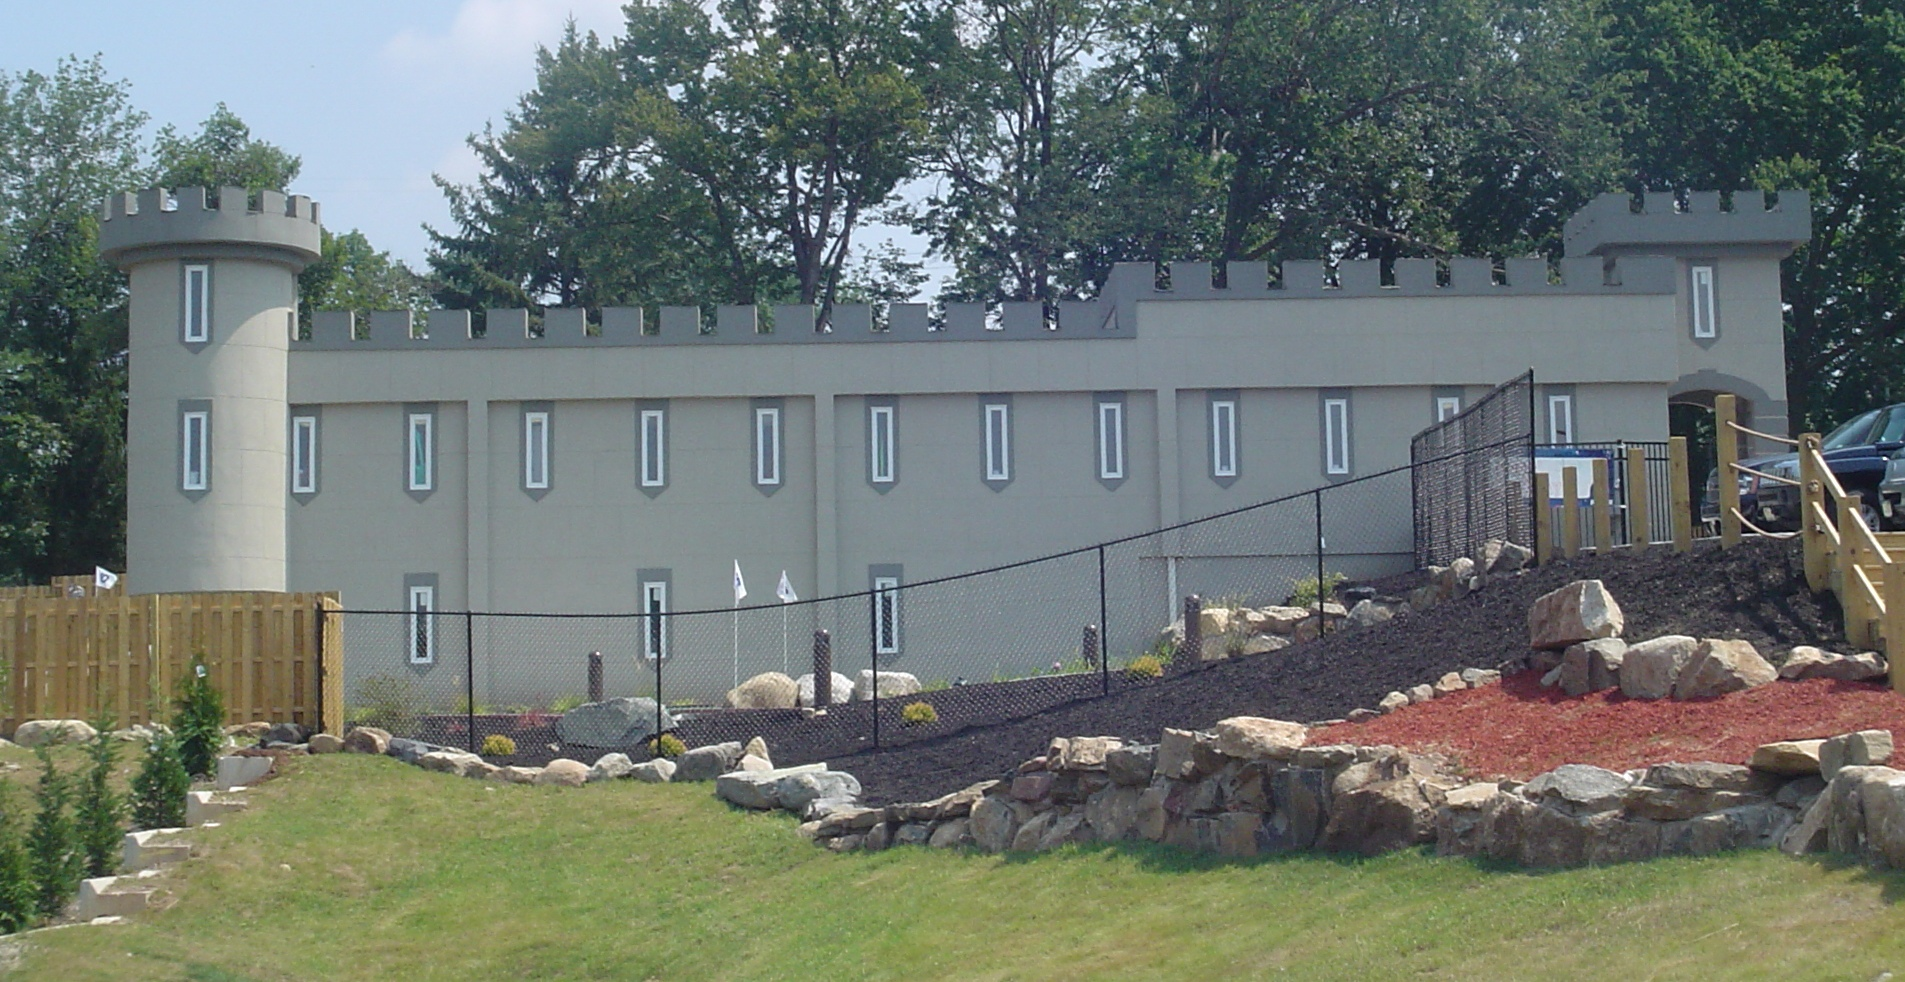 Castle Cove Mini Golf - Sussex County - Hardcoat Stucco